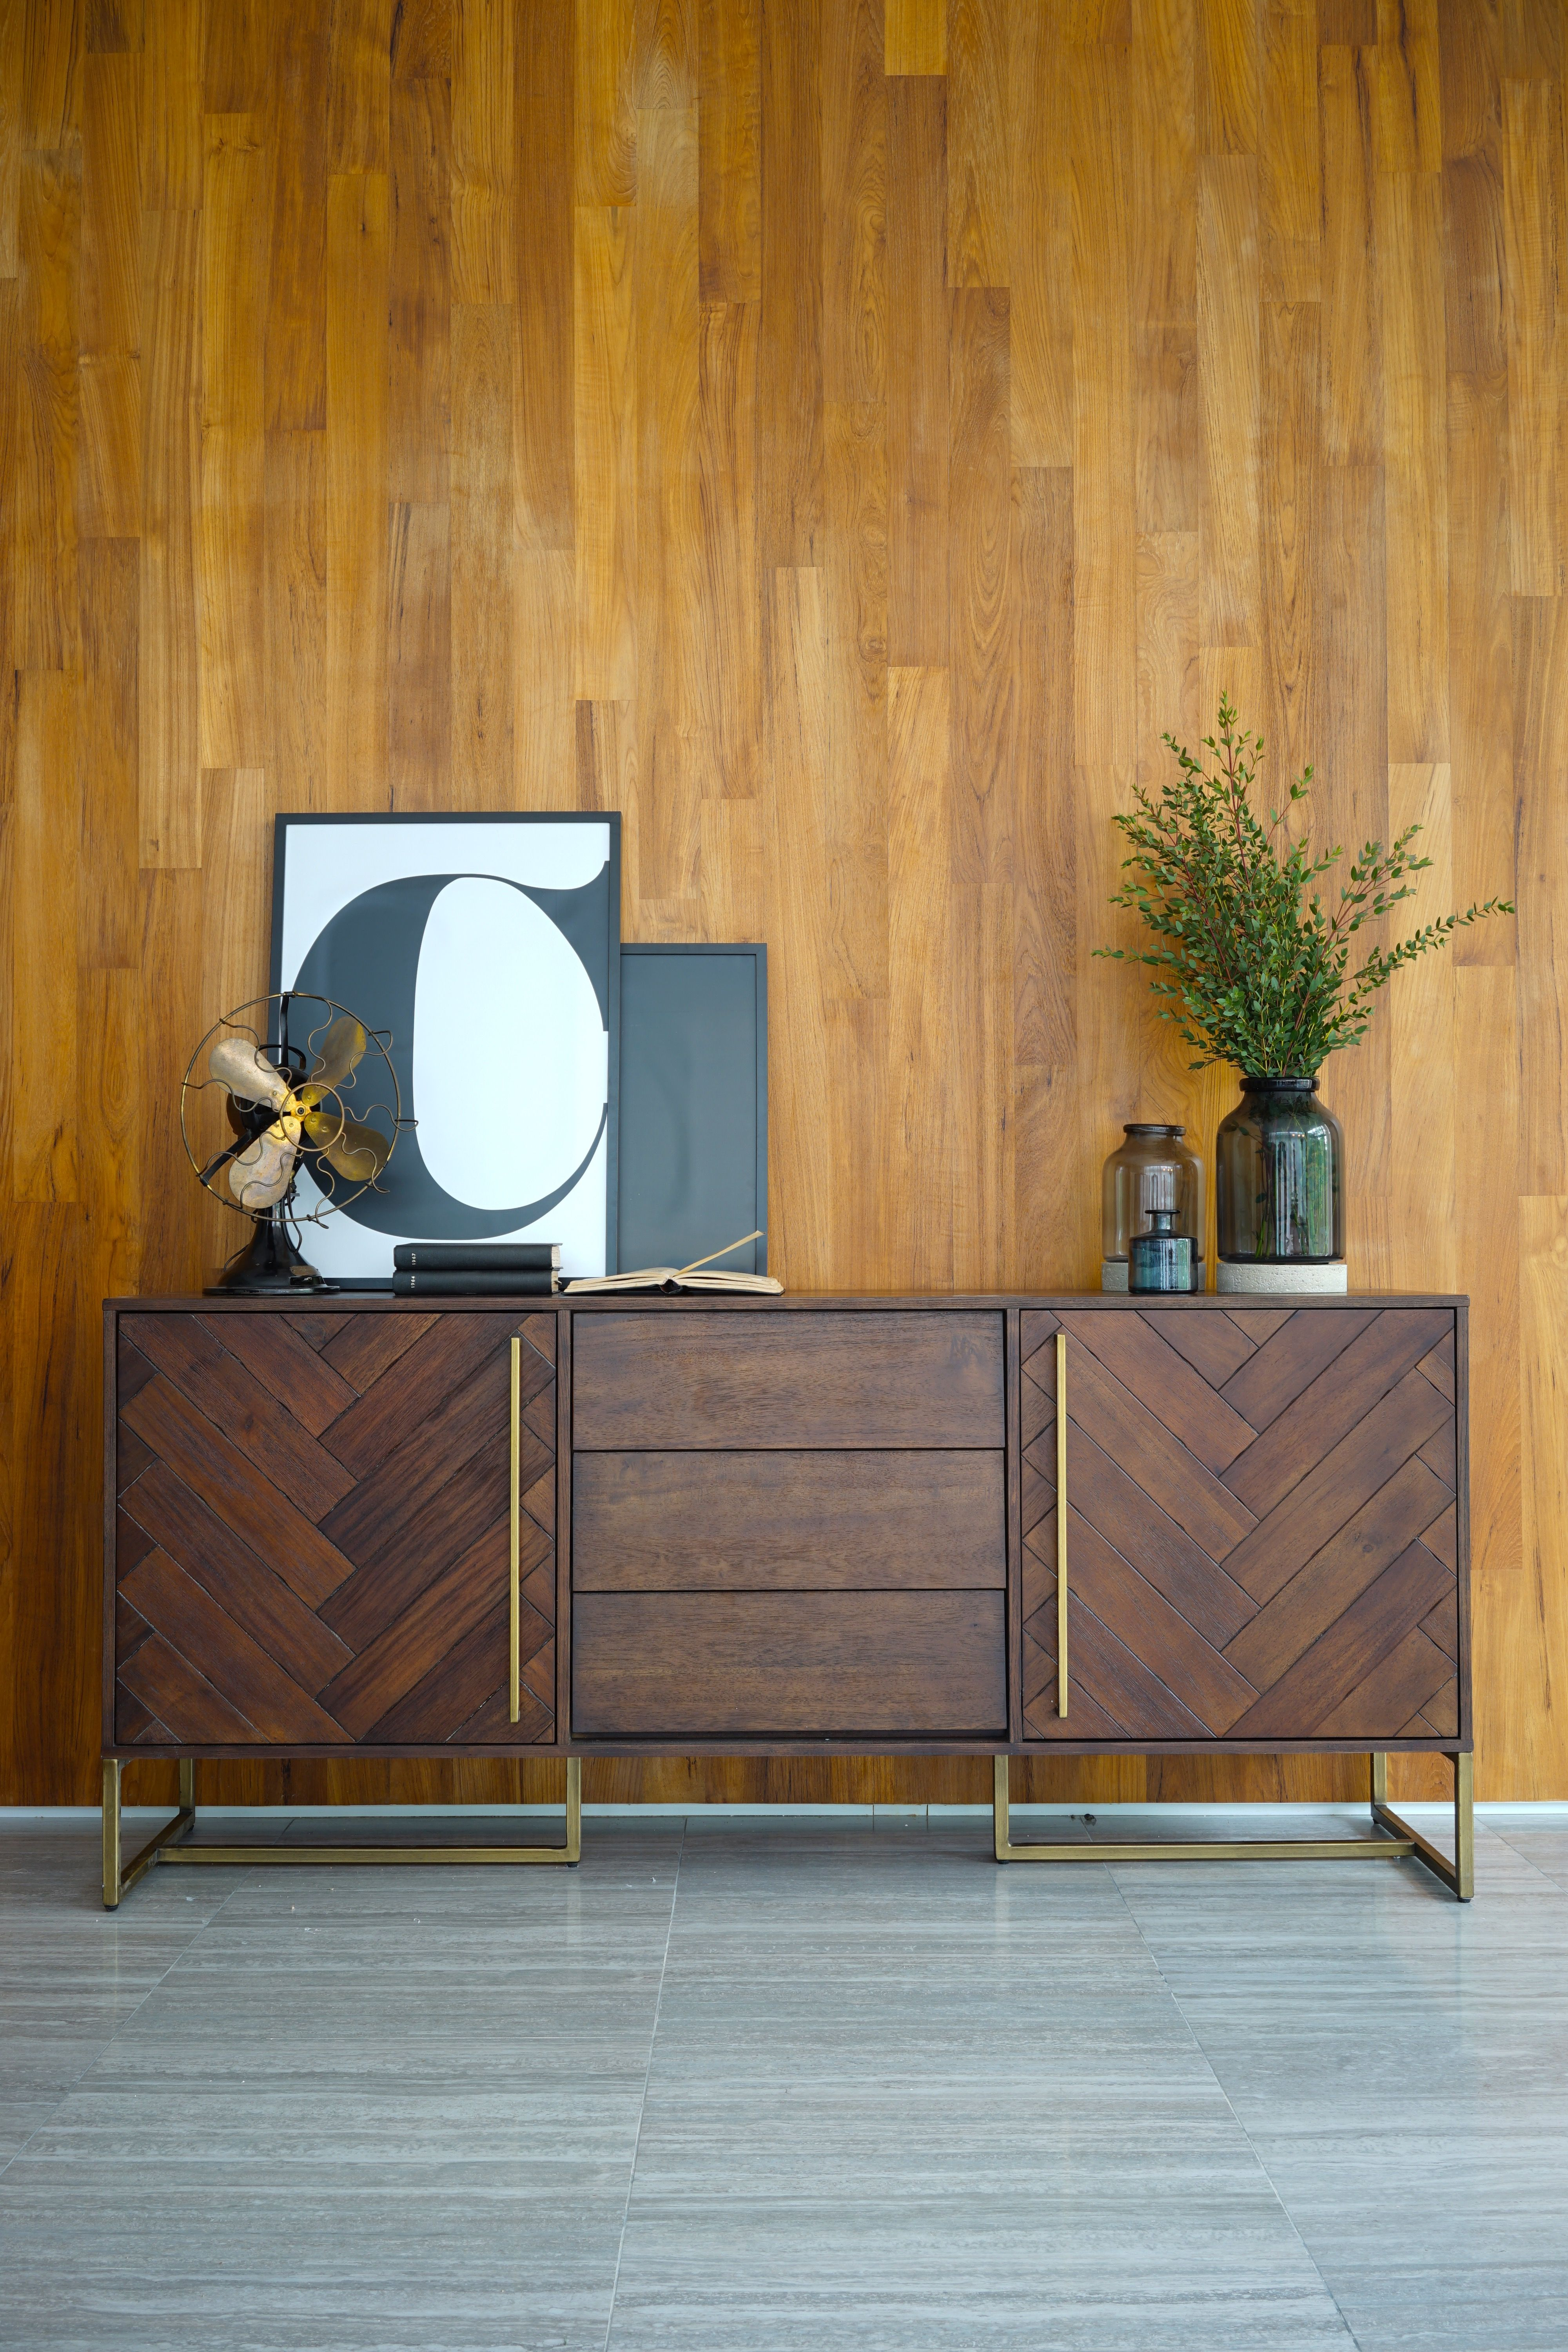 What better way to get organised than with the quality modern vintage bruno sideboard with its distinctive herringbone pattern laid in acacia wood